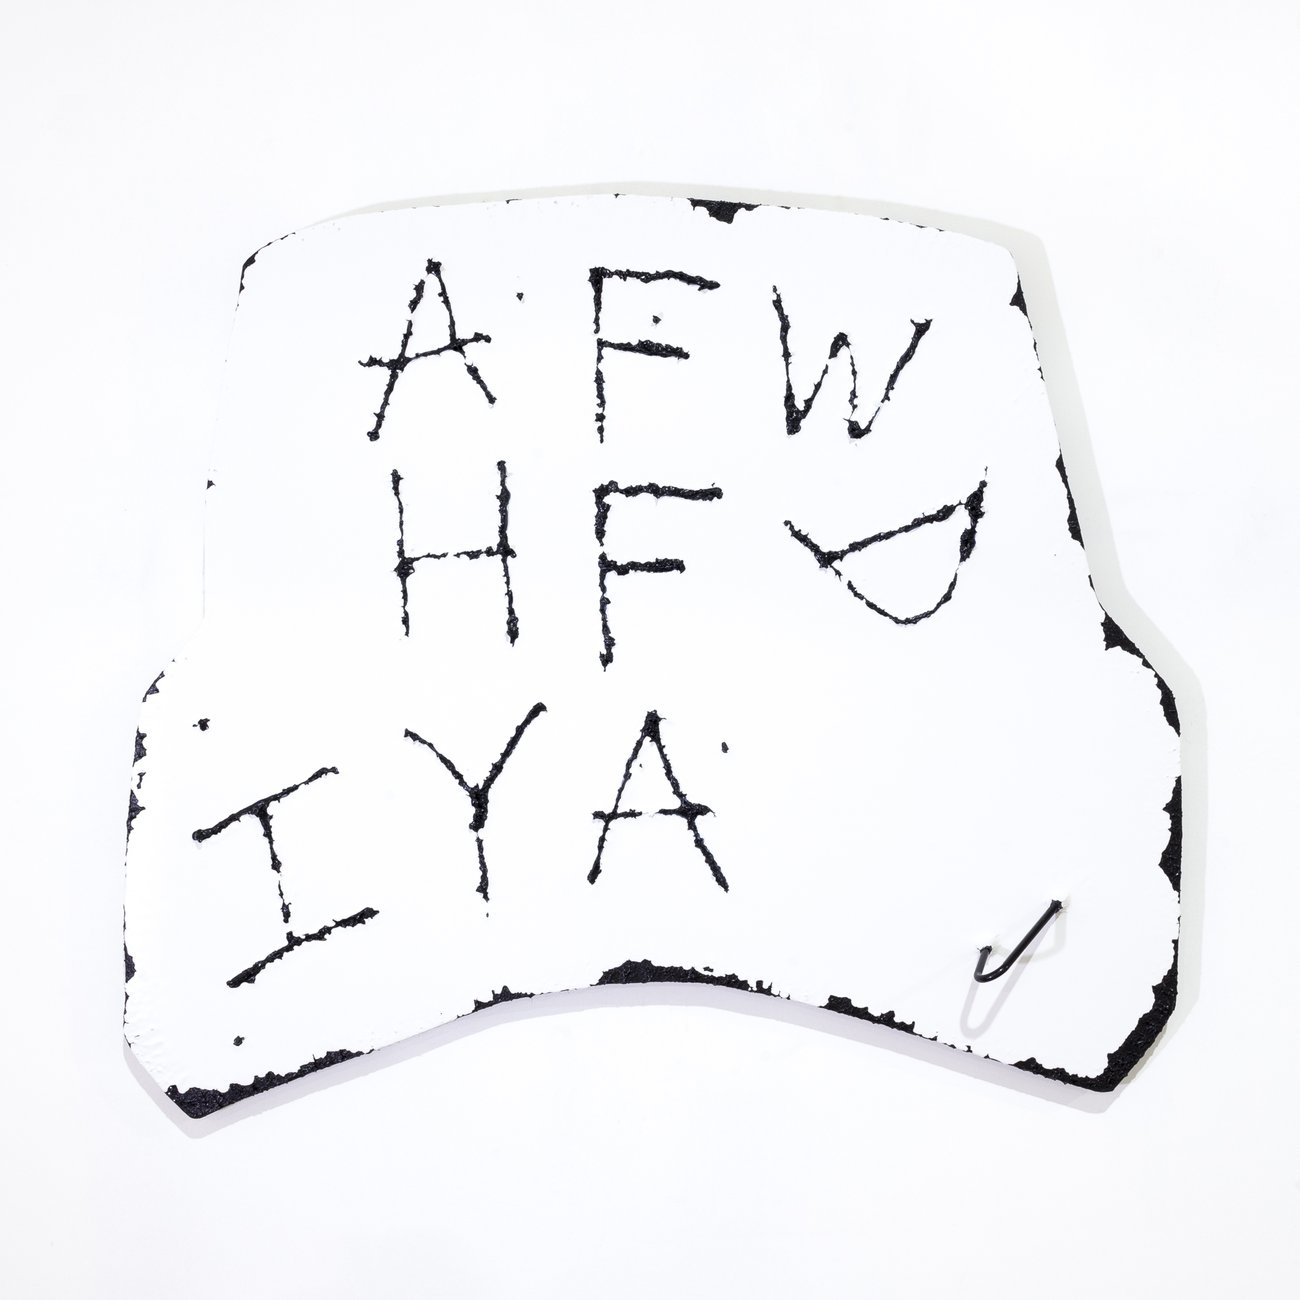 Preview image for I.A.H.Y.F.F.A.W.D. (Externalized)